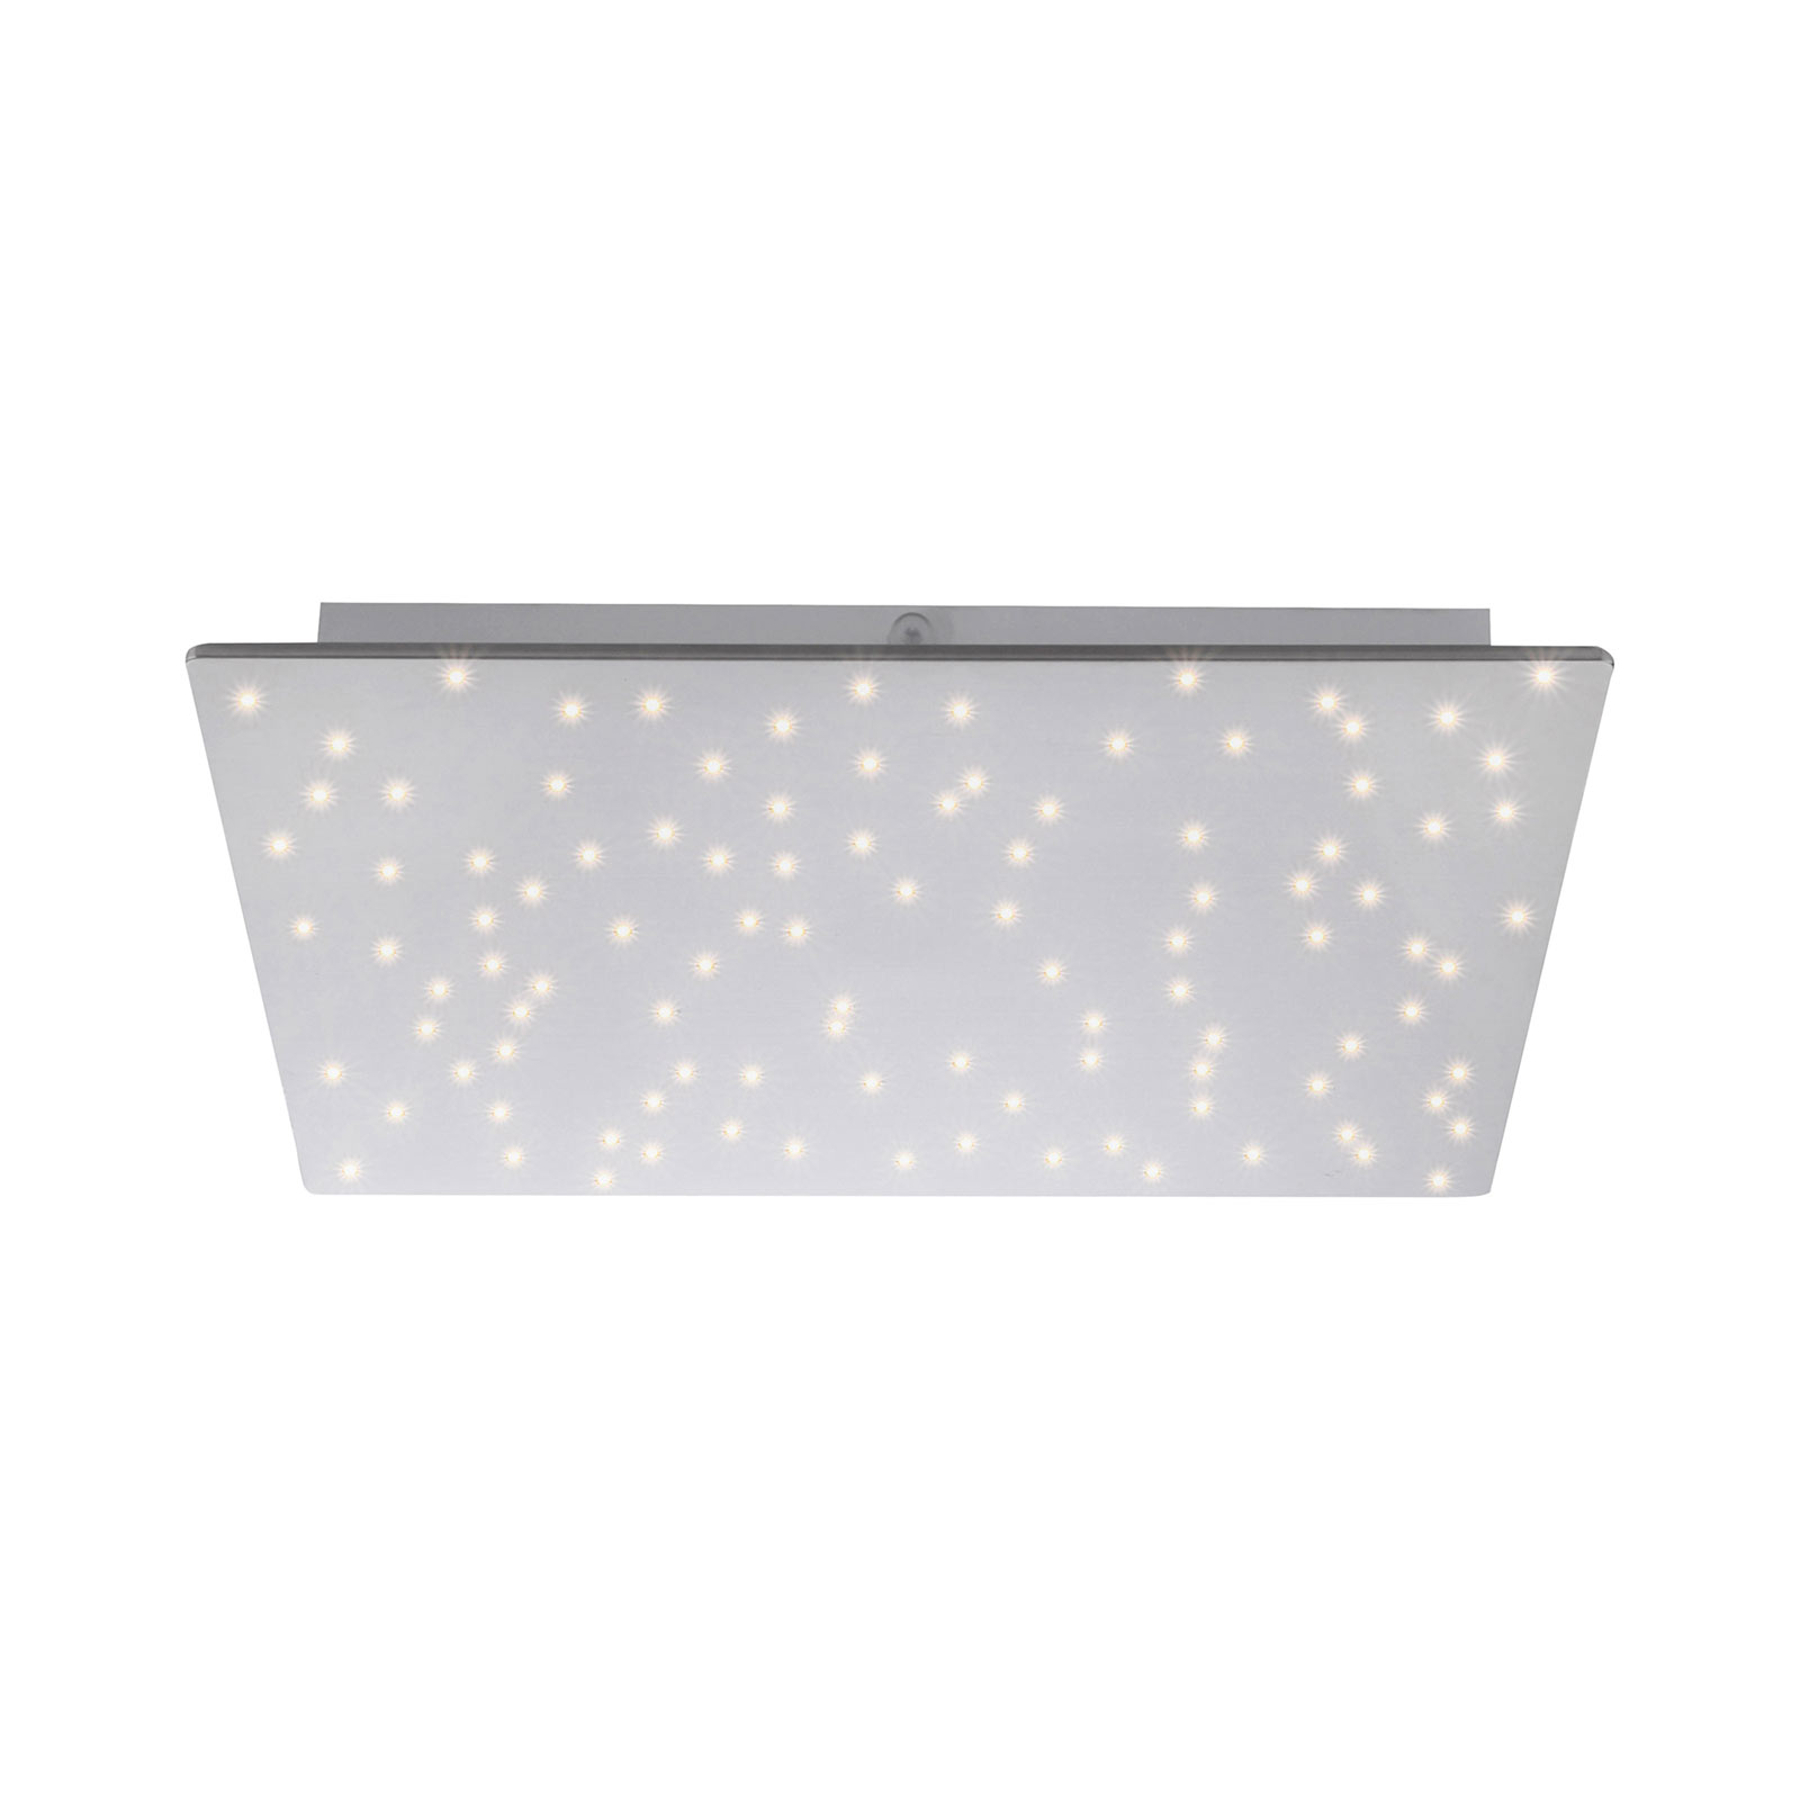 Plafonnier LED Sparkle, tunable white, 45 x 45 cm